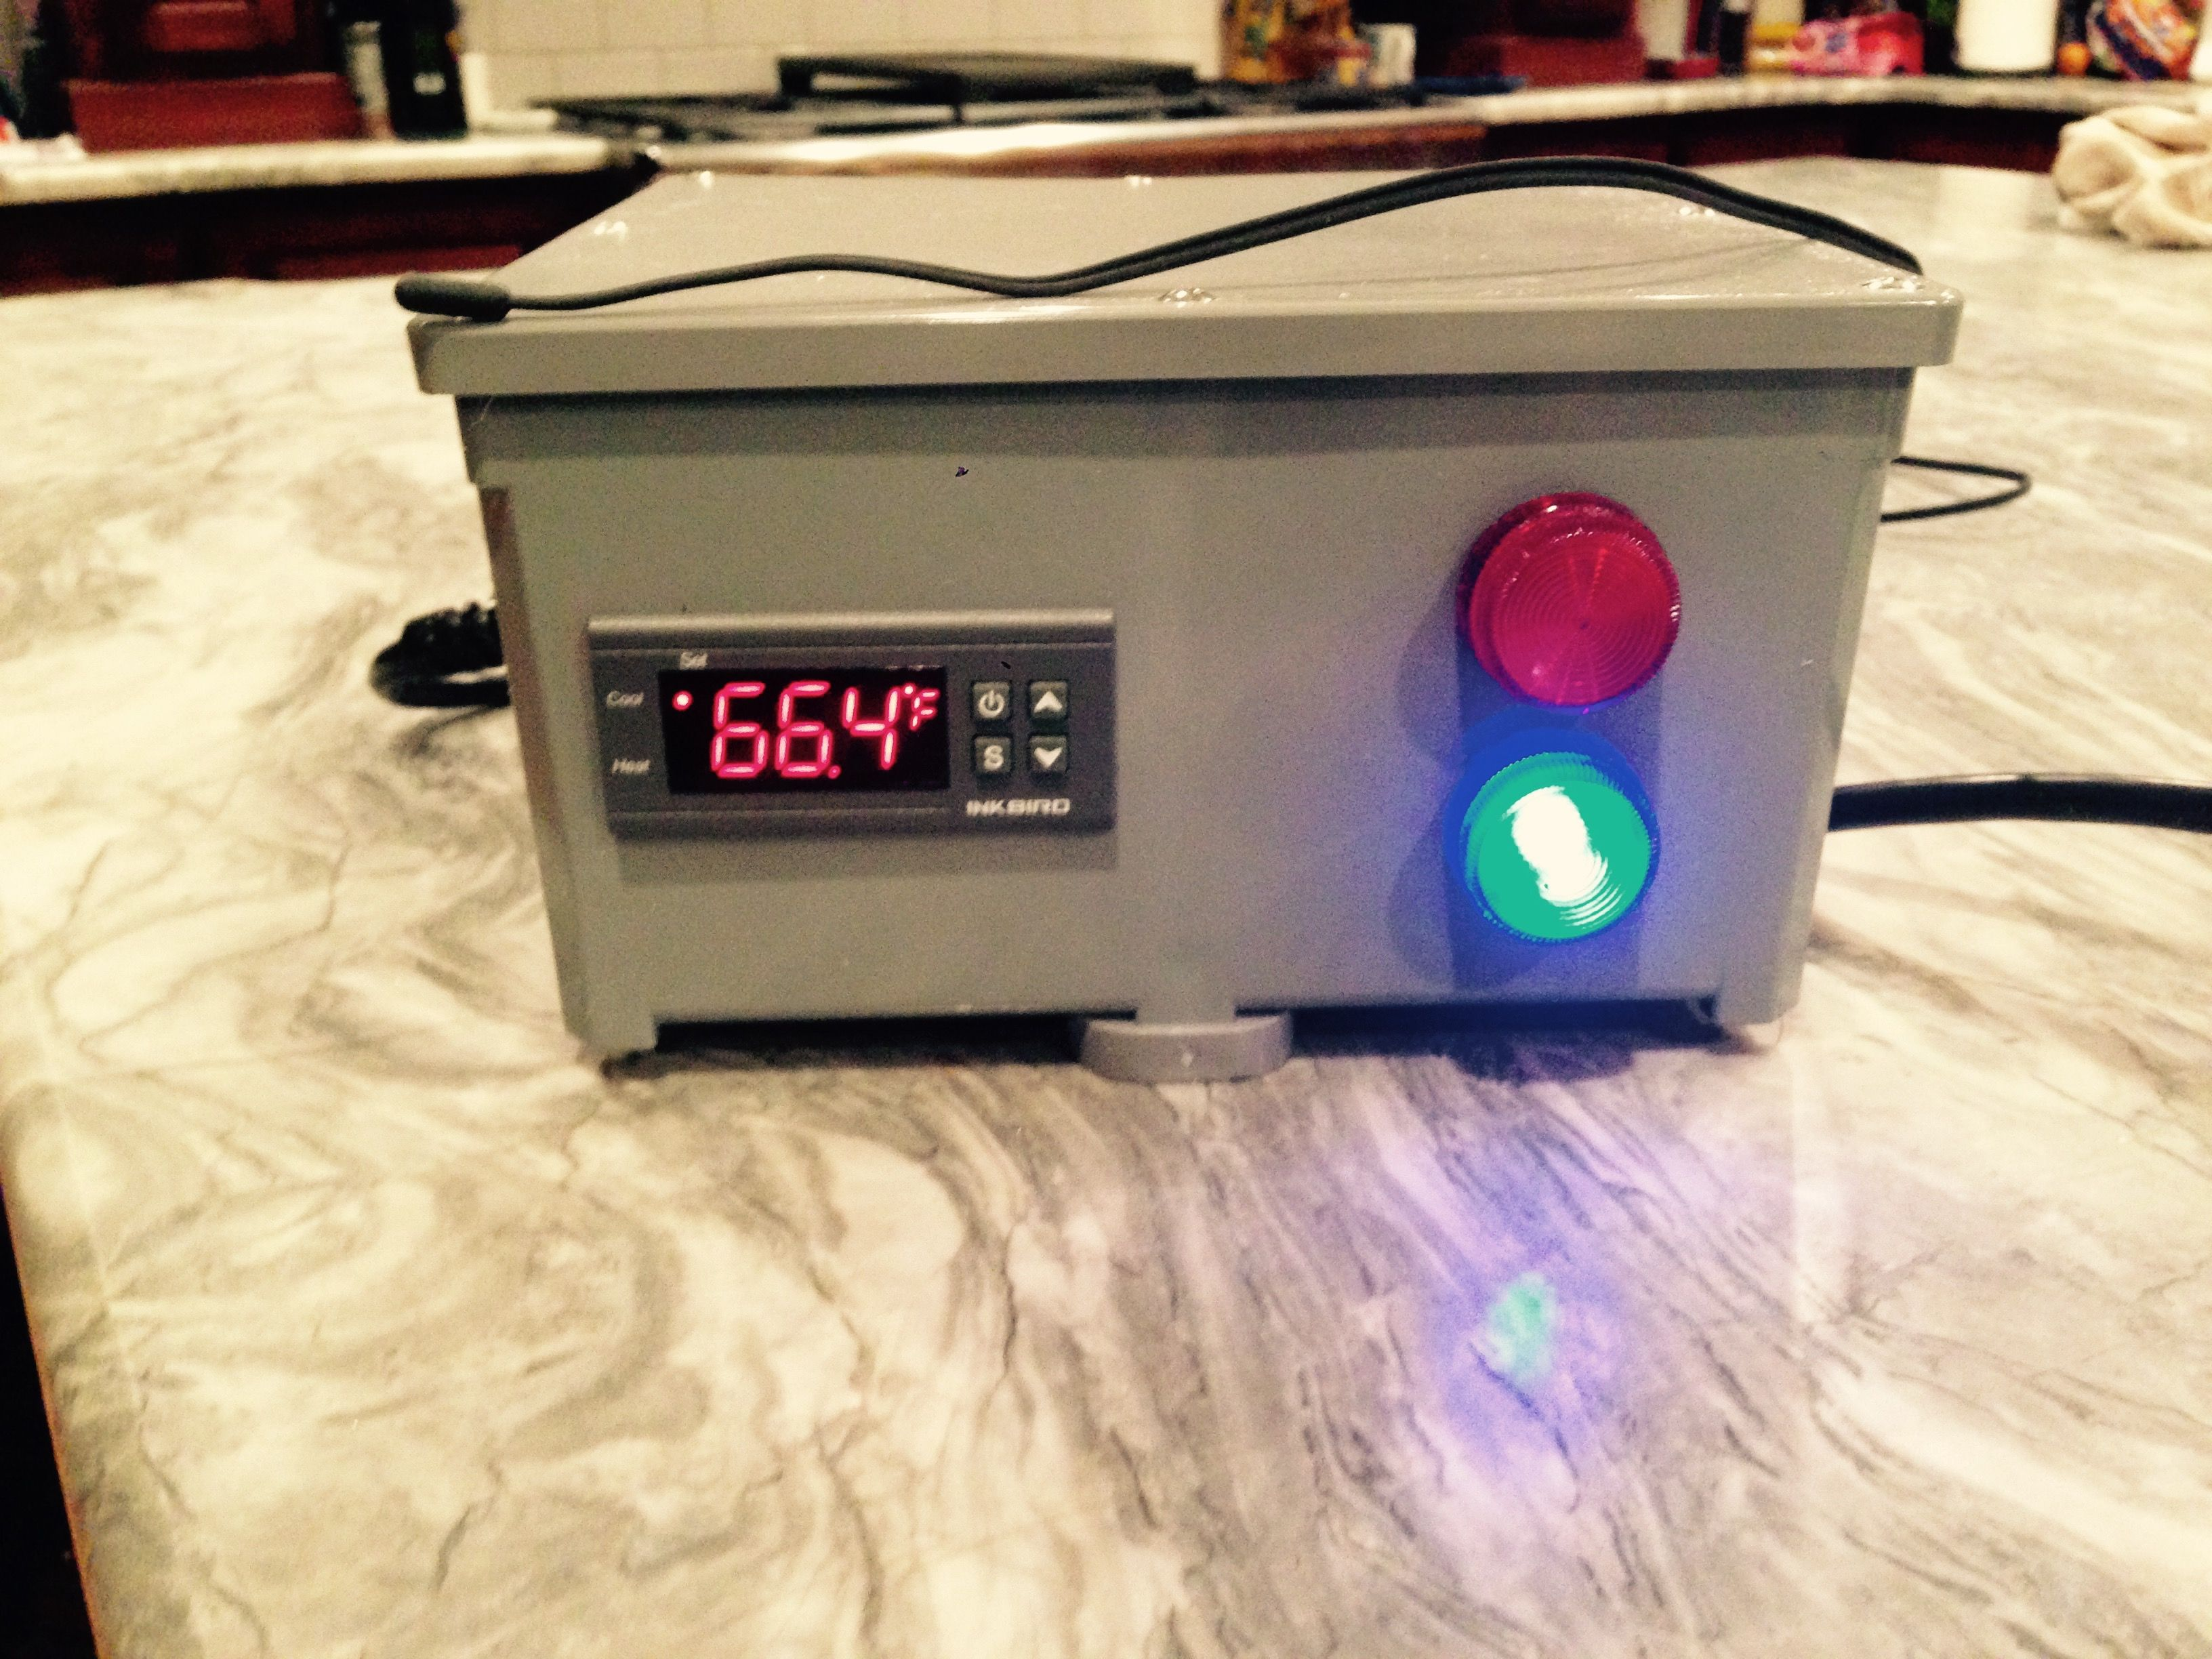 2 Stage Temperature Controller With Indicator Lights For My Brewing Ranco Dual Temperaturecontroller Fermenter